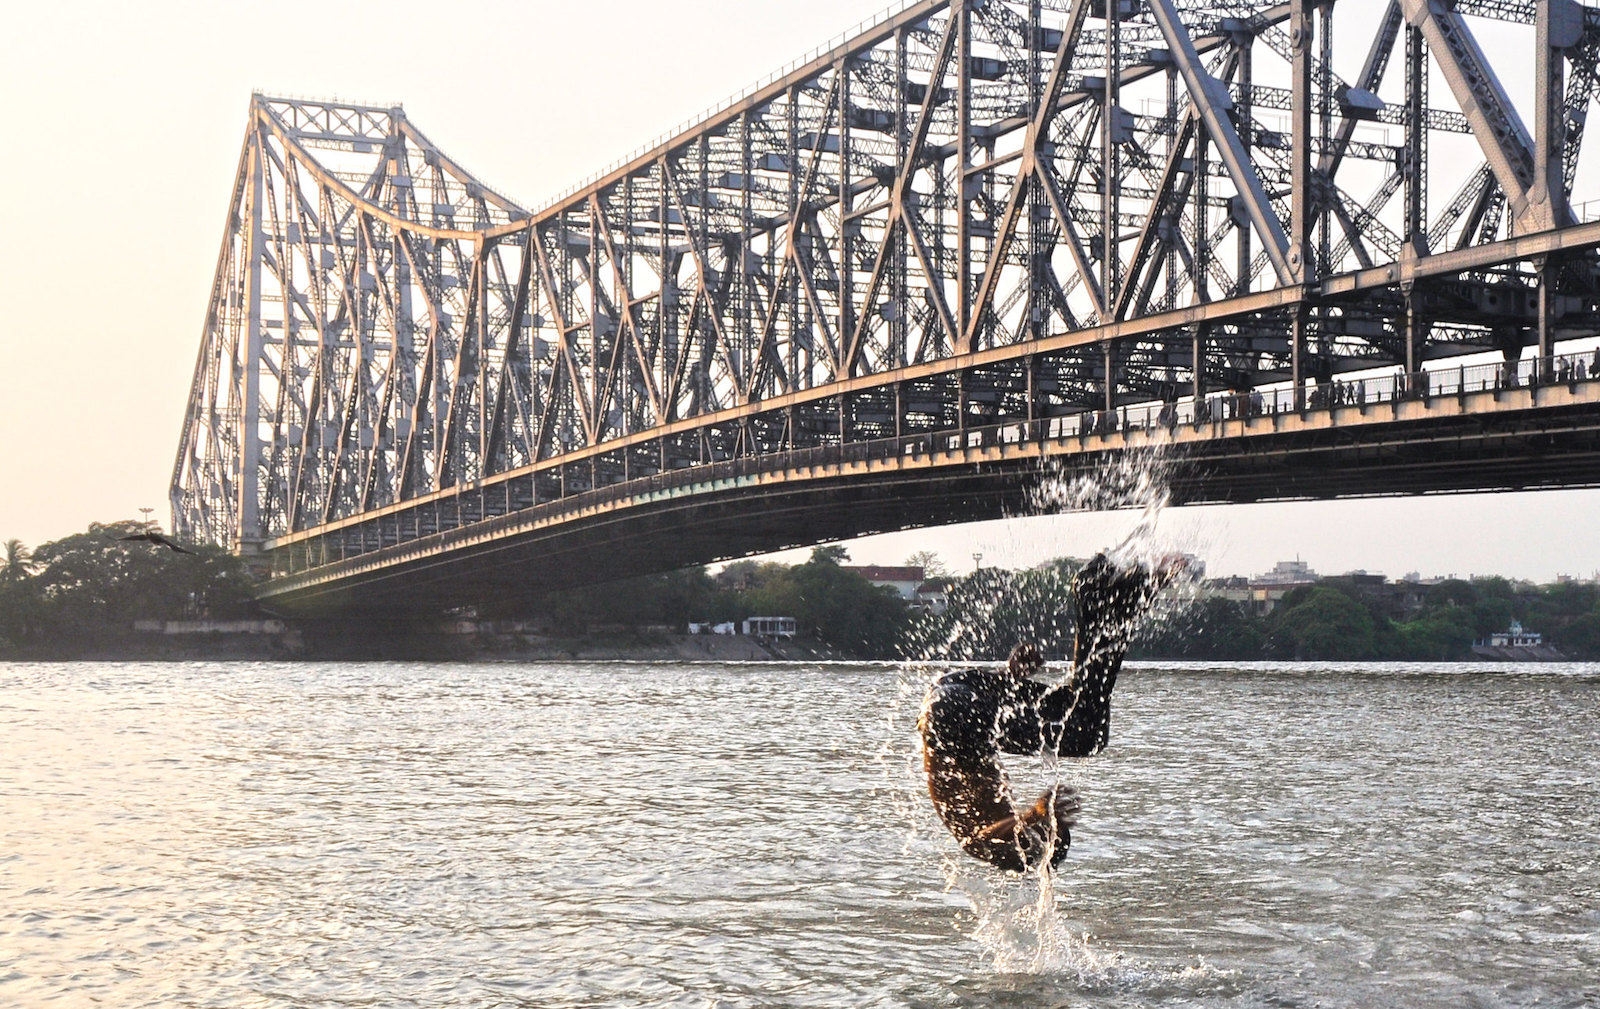 Humanfish at Howrah Bridge in India